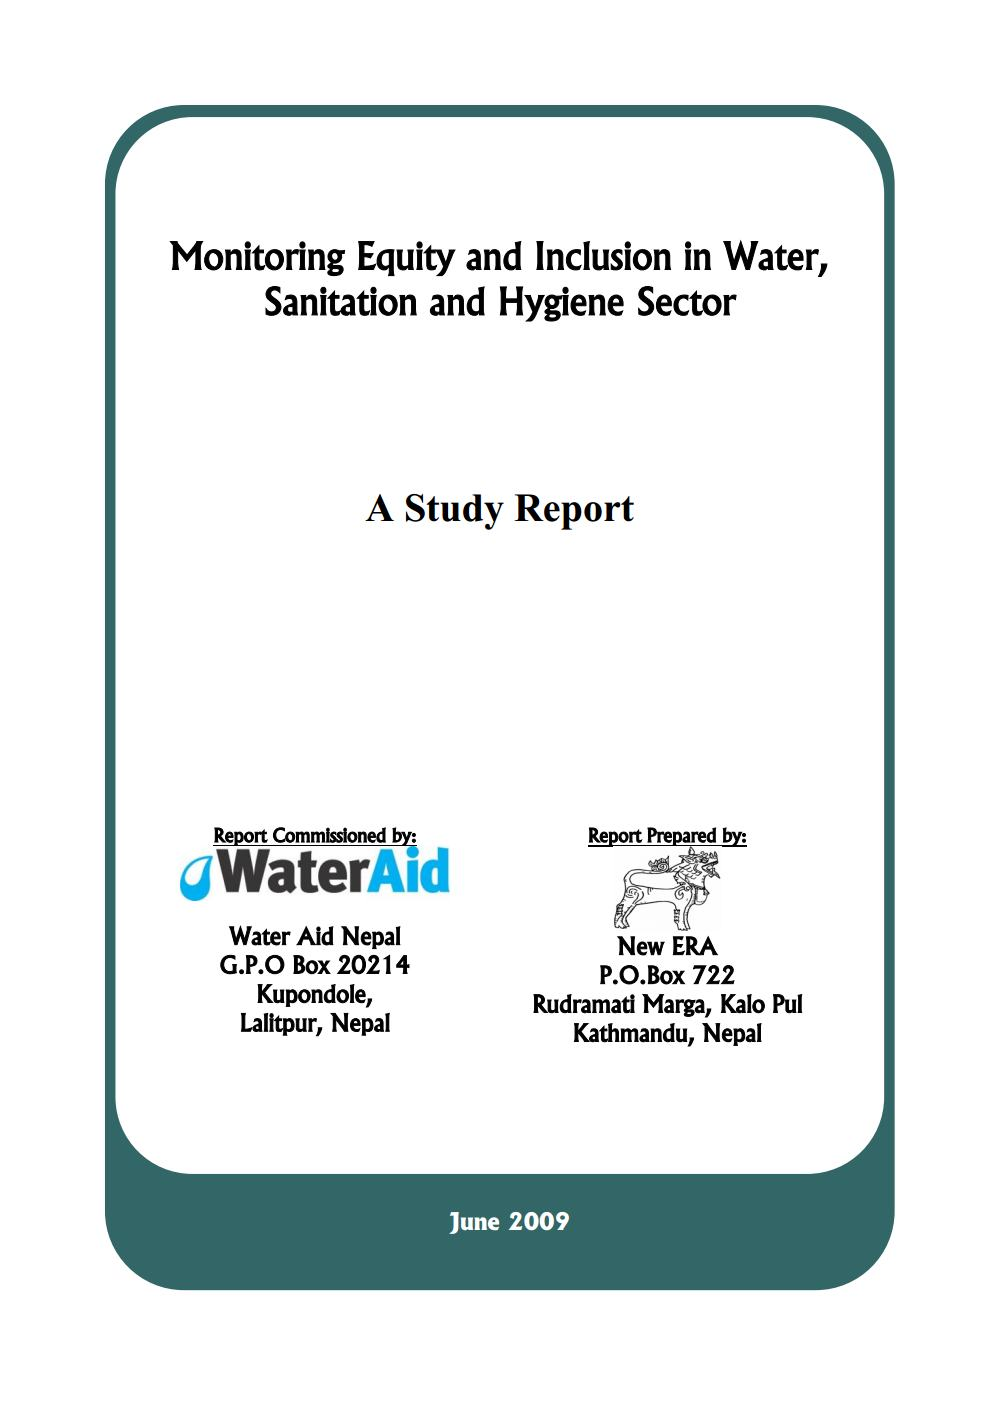 Monitoring Equity and Inclusion in Water, Sanitation and Hygiene Sector – A Study Report